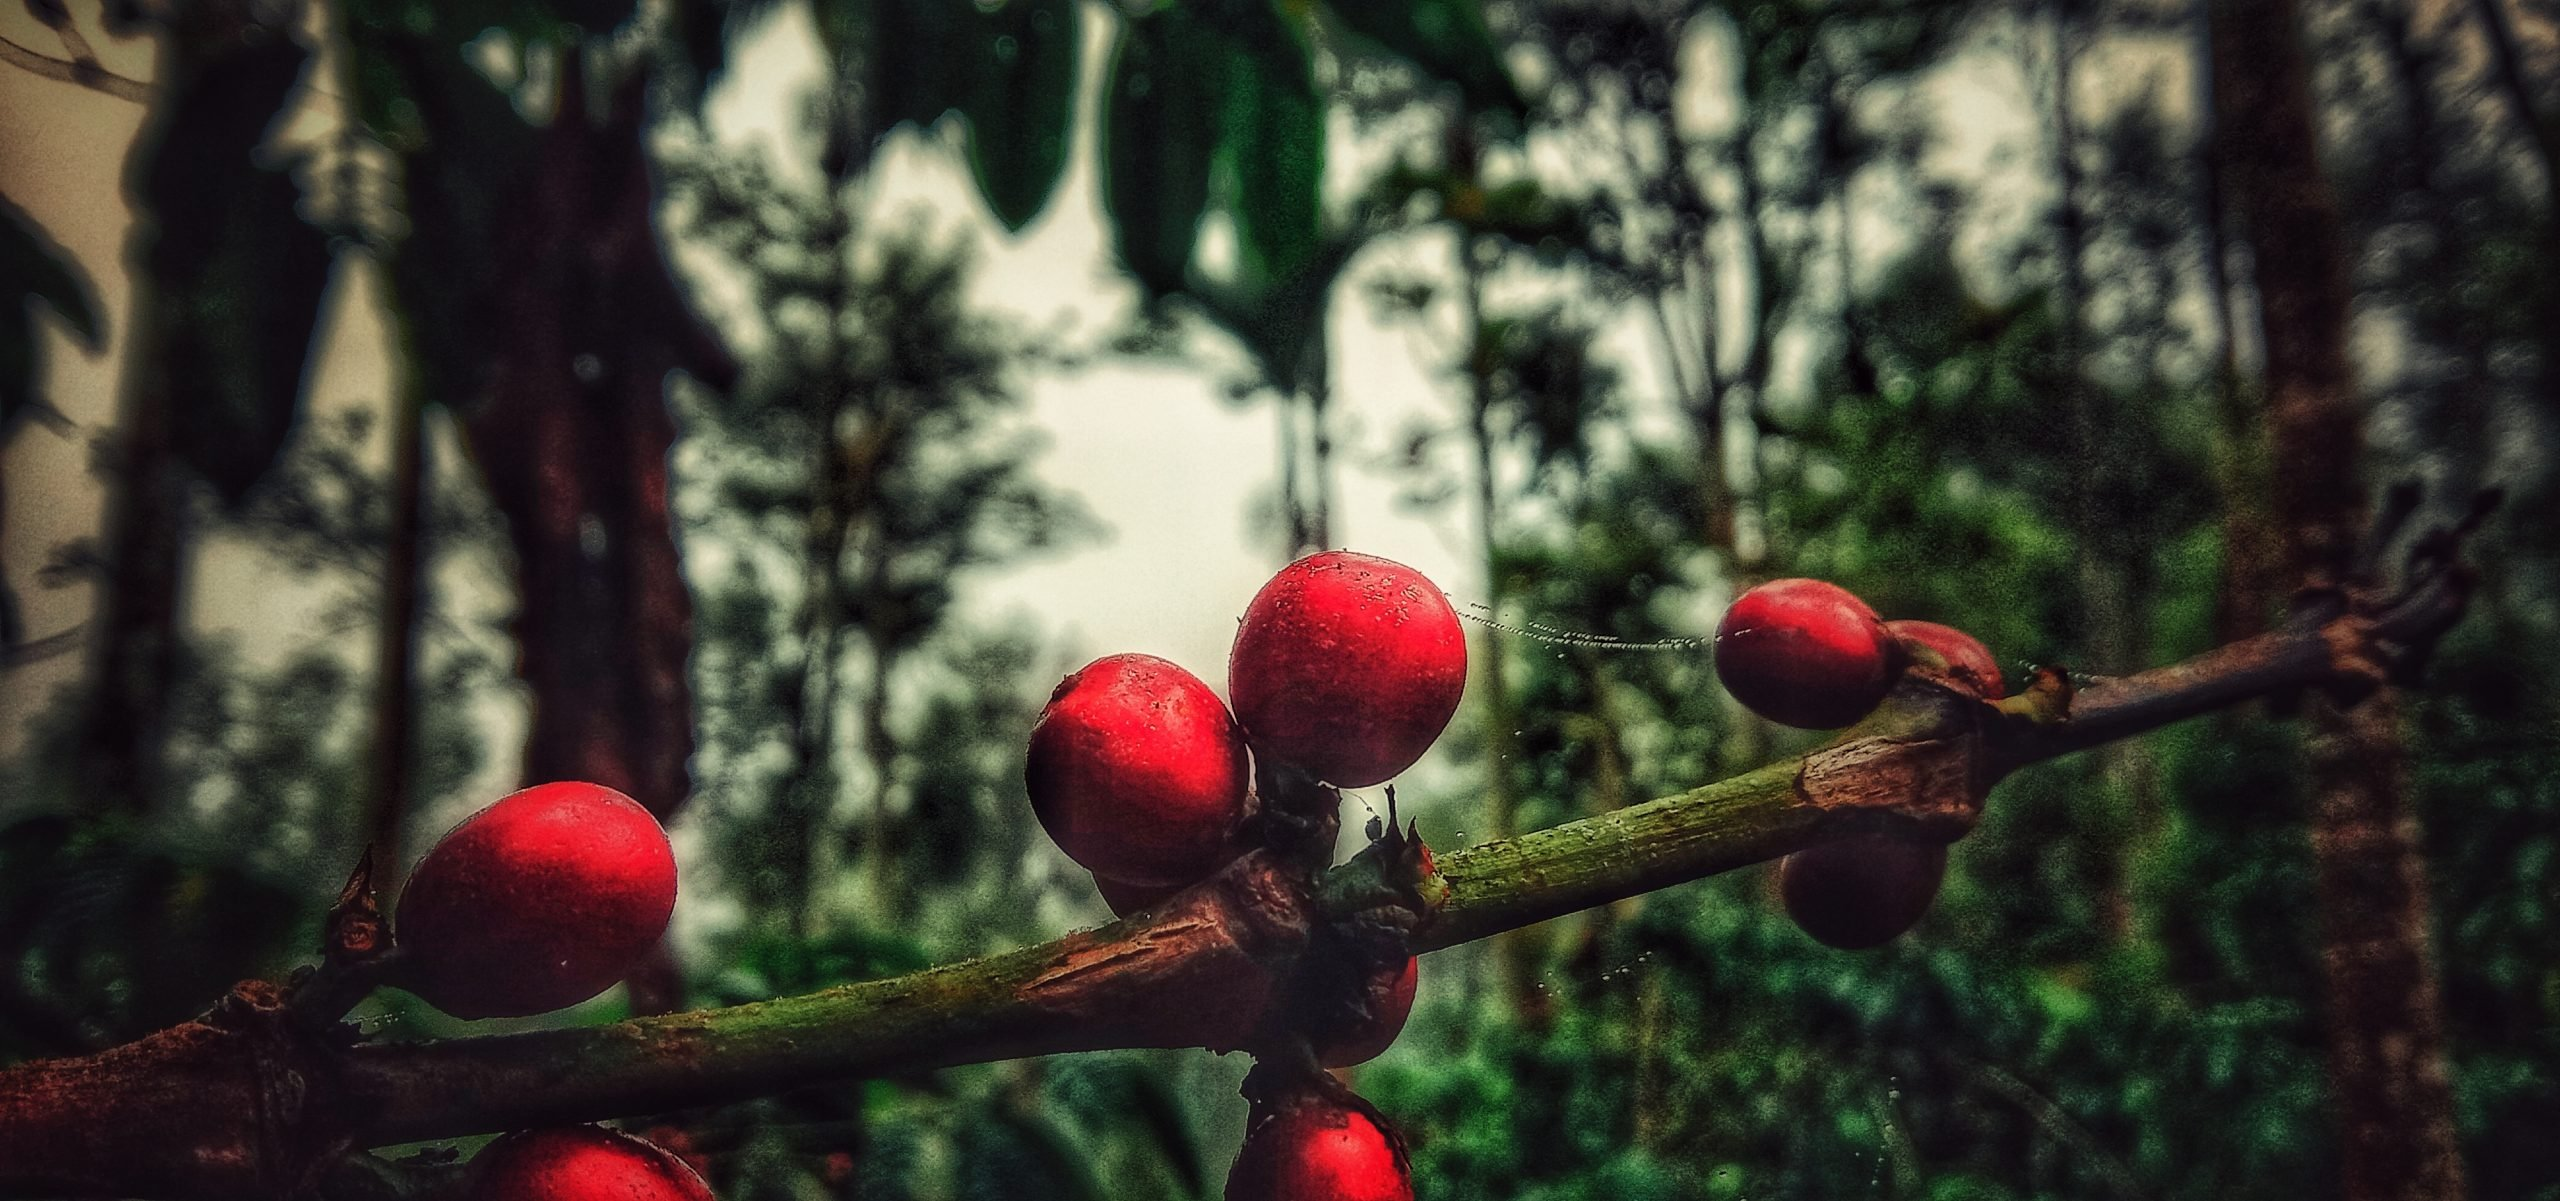 Cherries on a plant